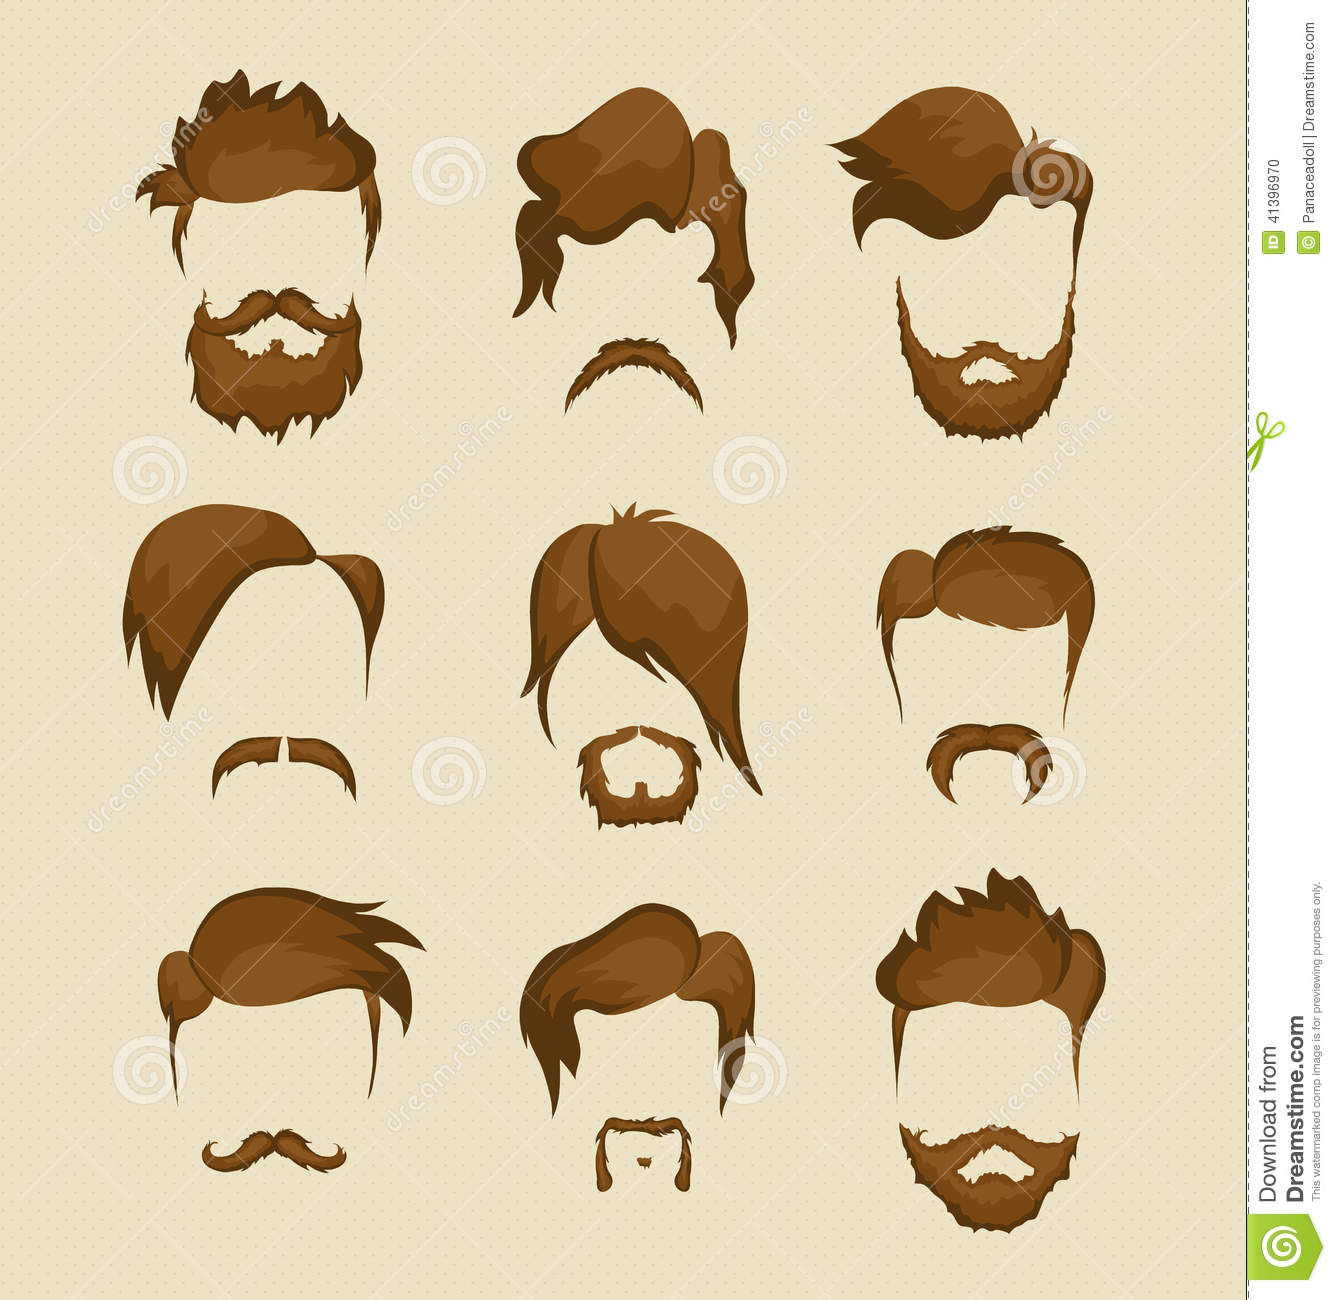 Mustache, Beard And Hairstyle Hipster Stock Vector - Image ...